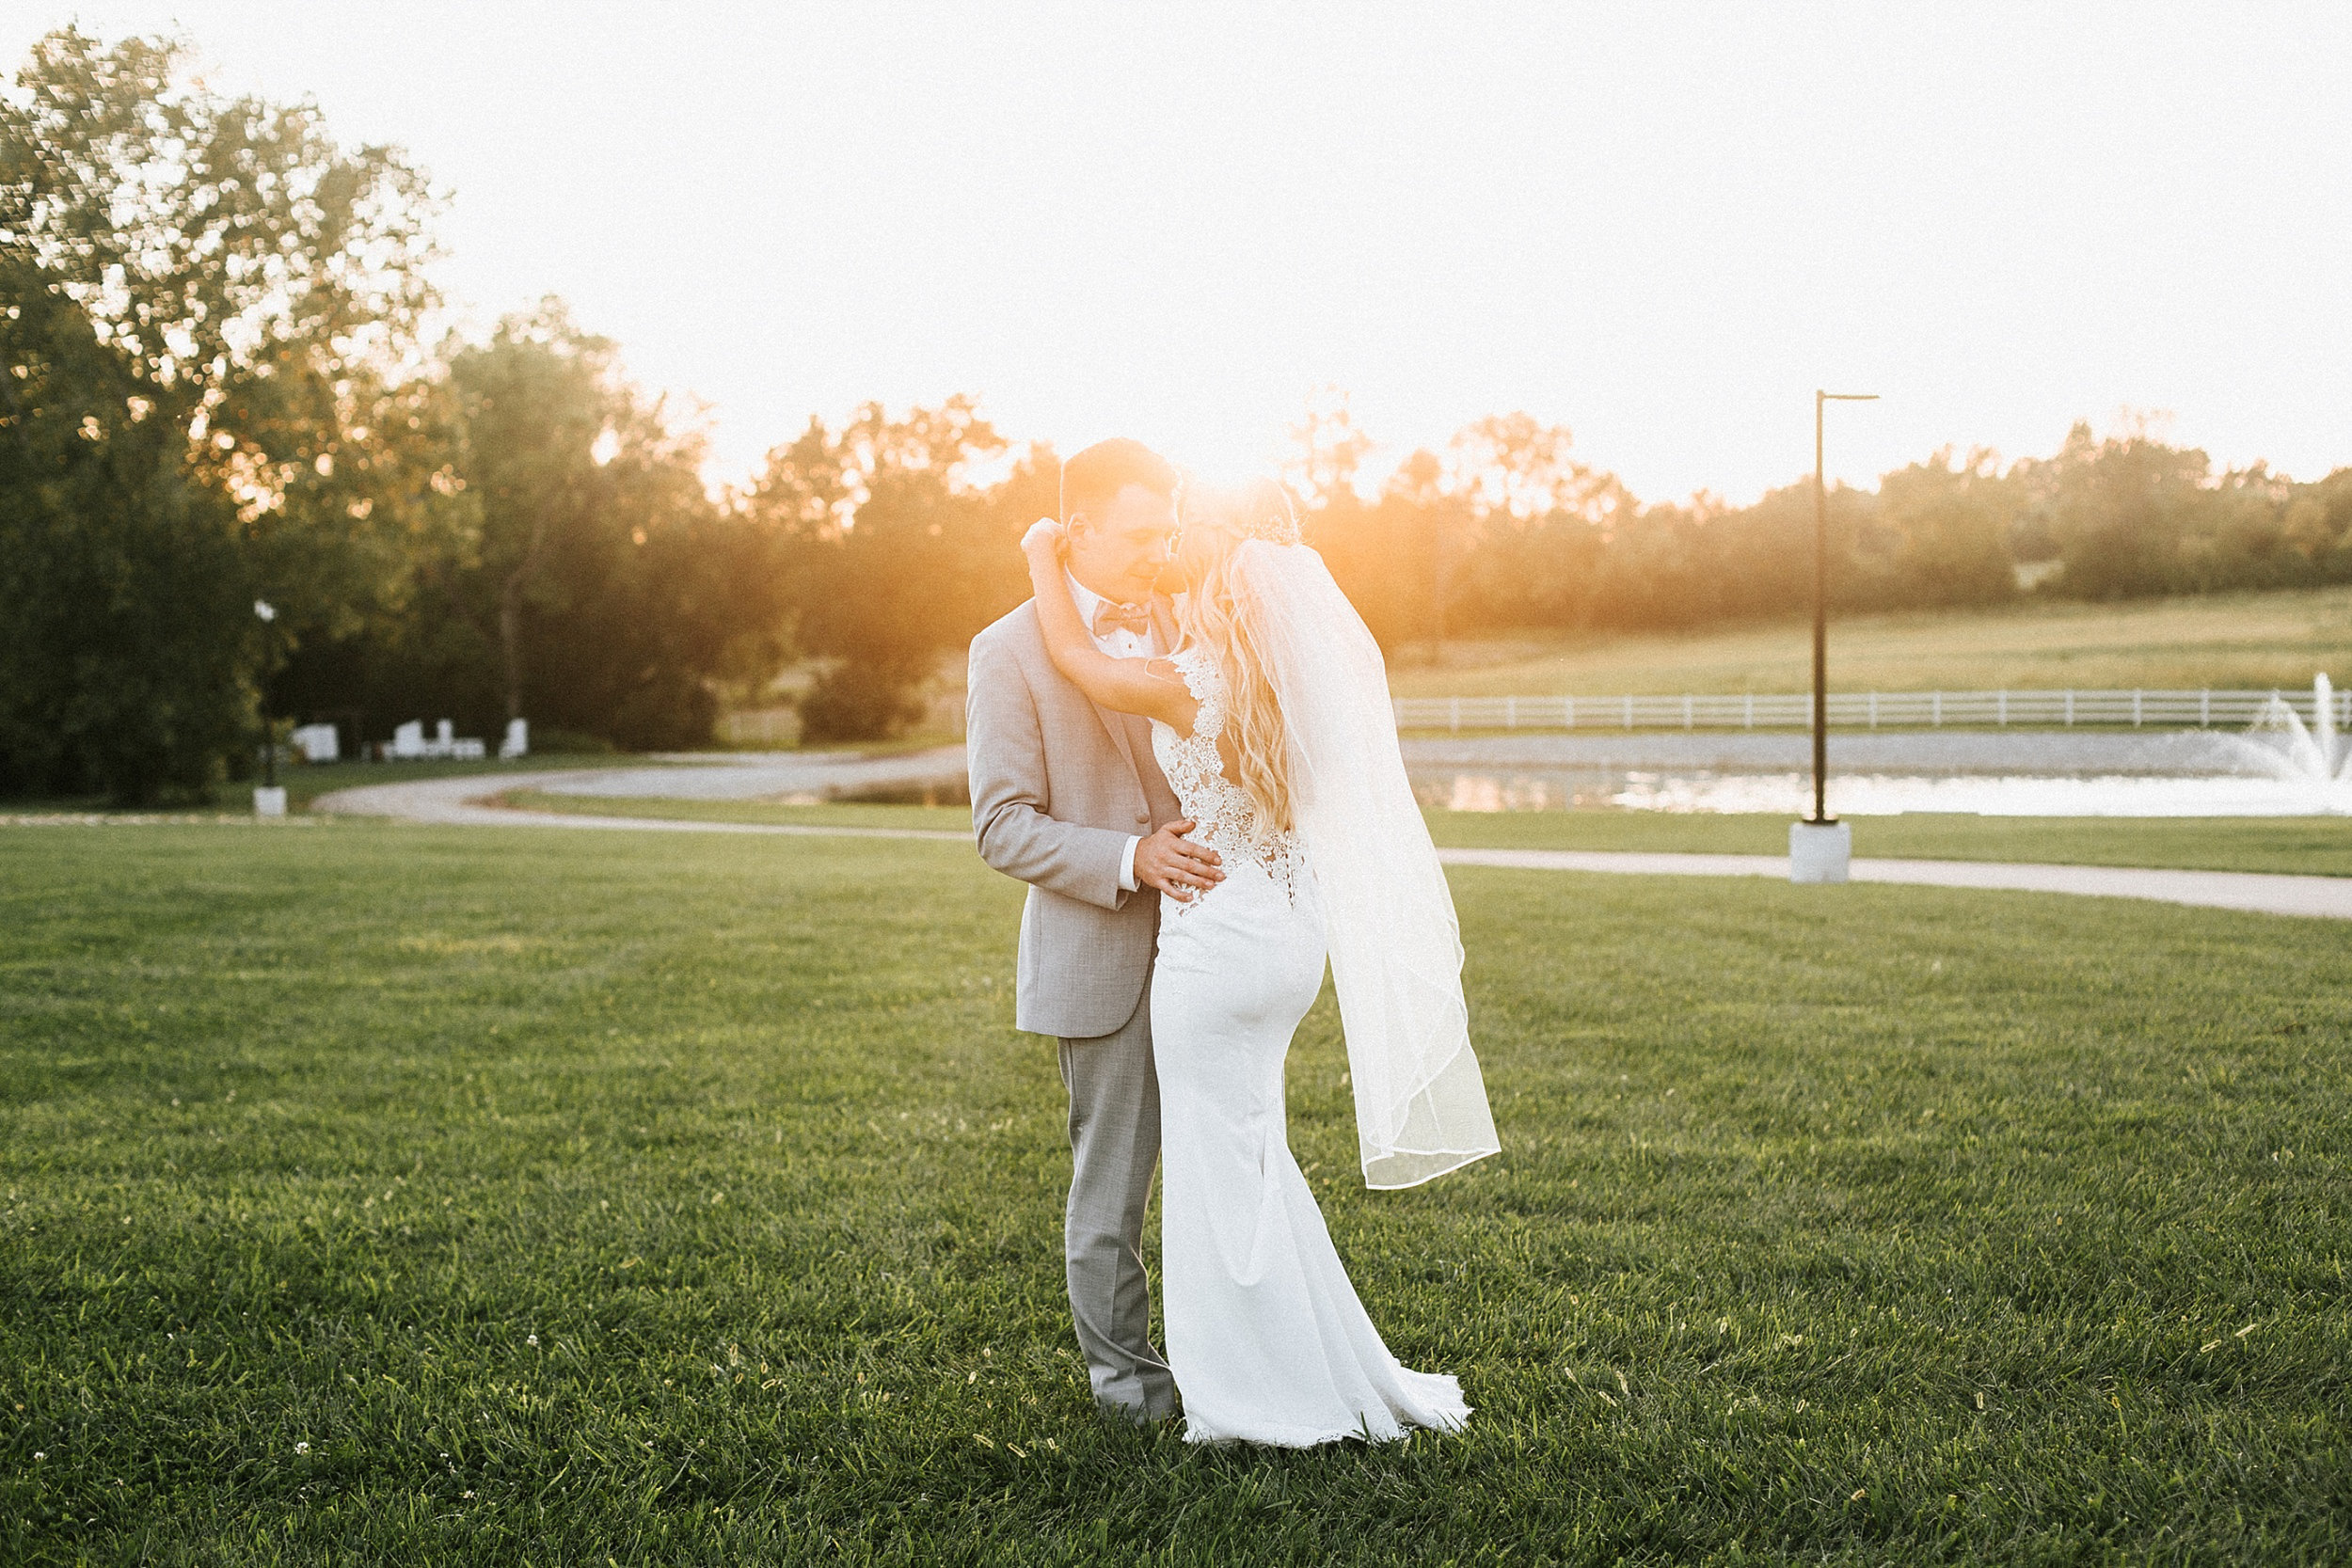 Brooke Townsend Photography - Cincinnati Wedding Photographer (199 of 230).jpg